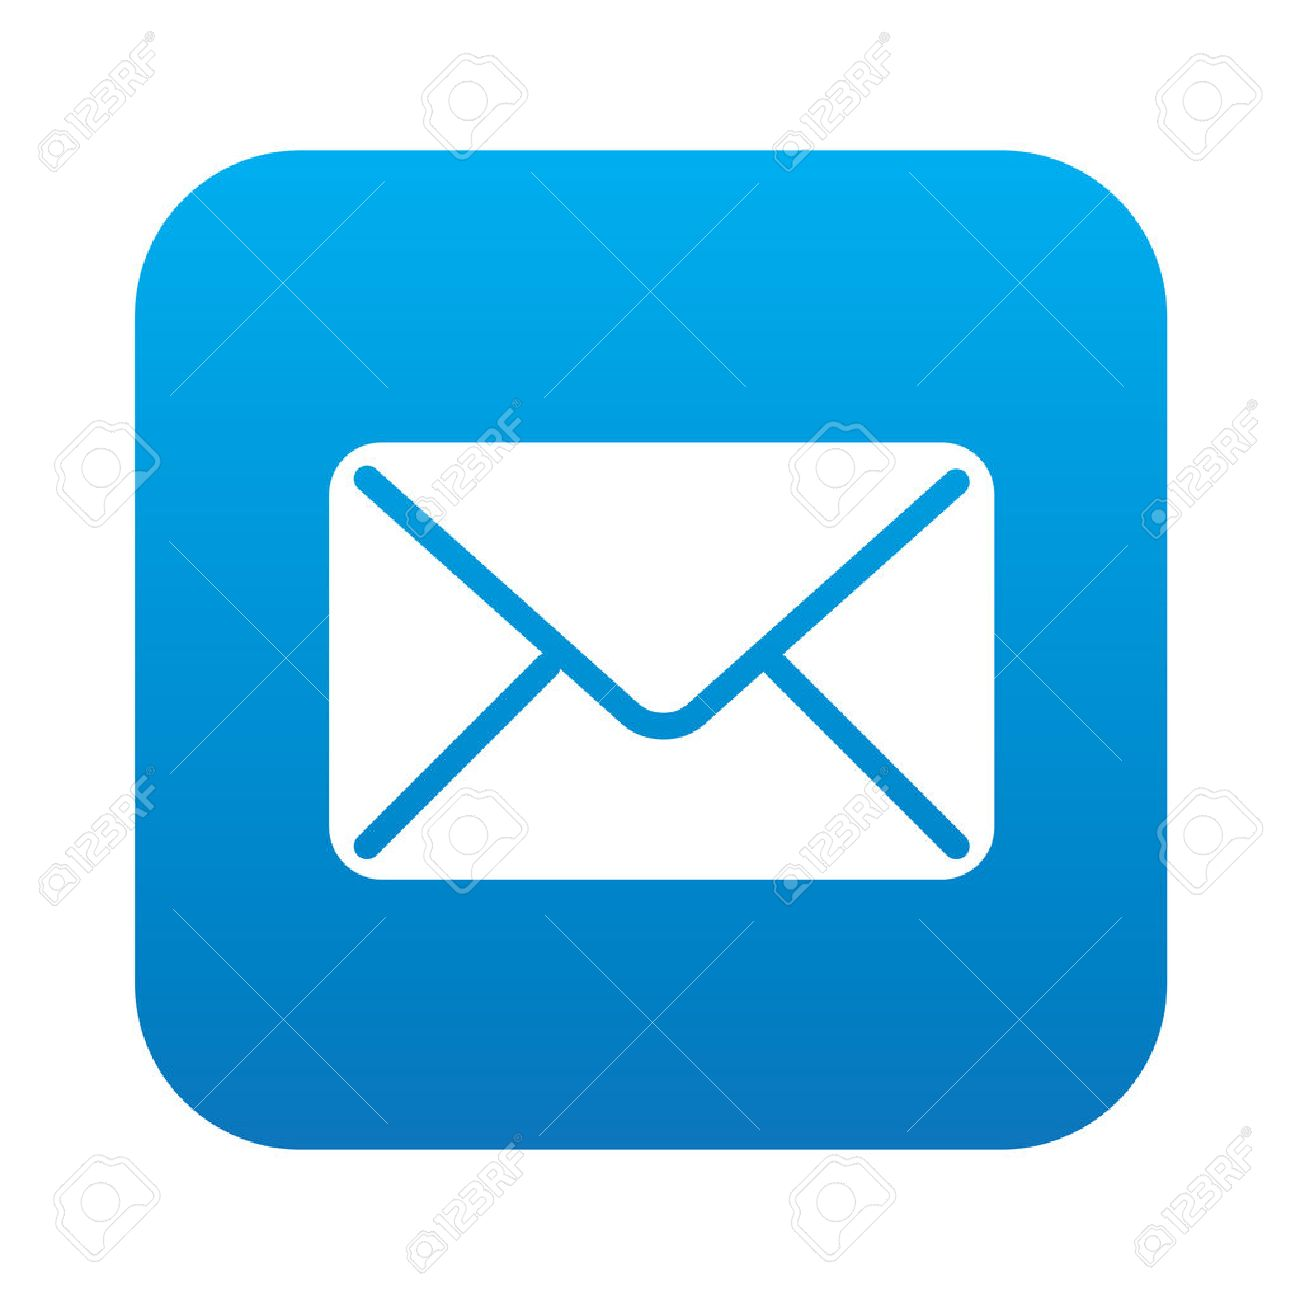 35929070-email-icon-on-blue-background-clean-vector